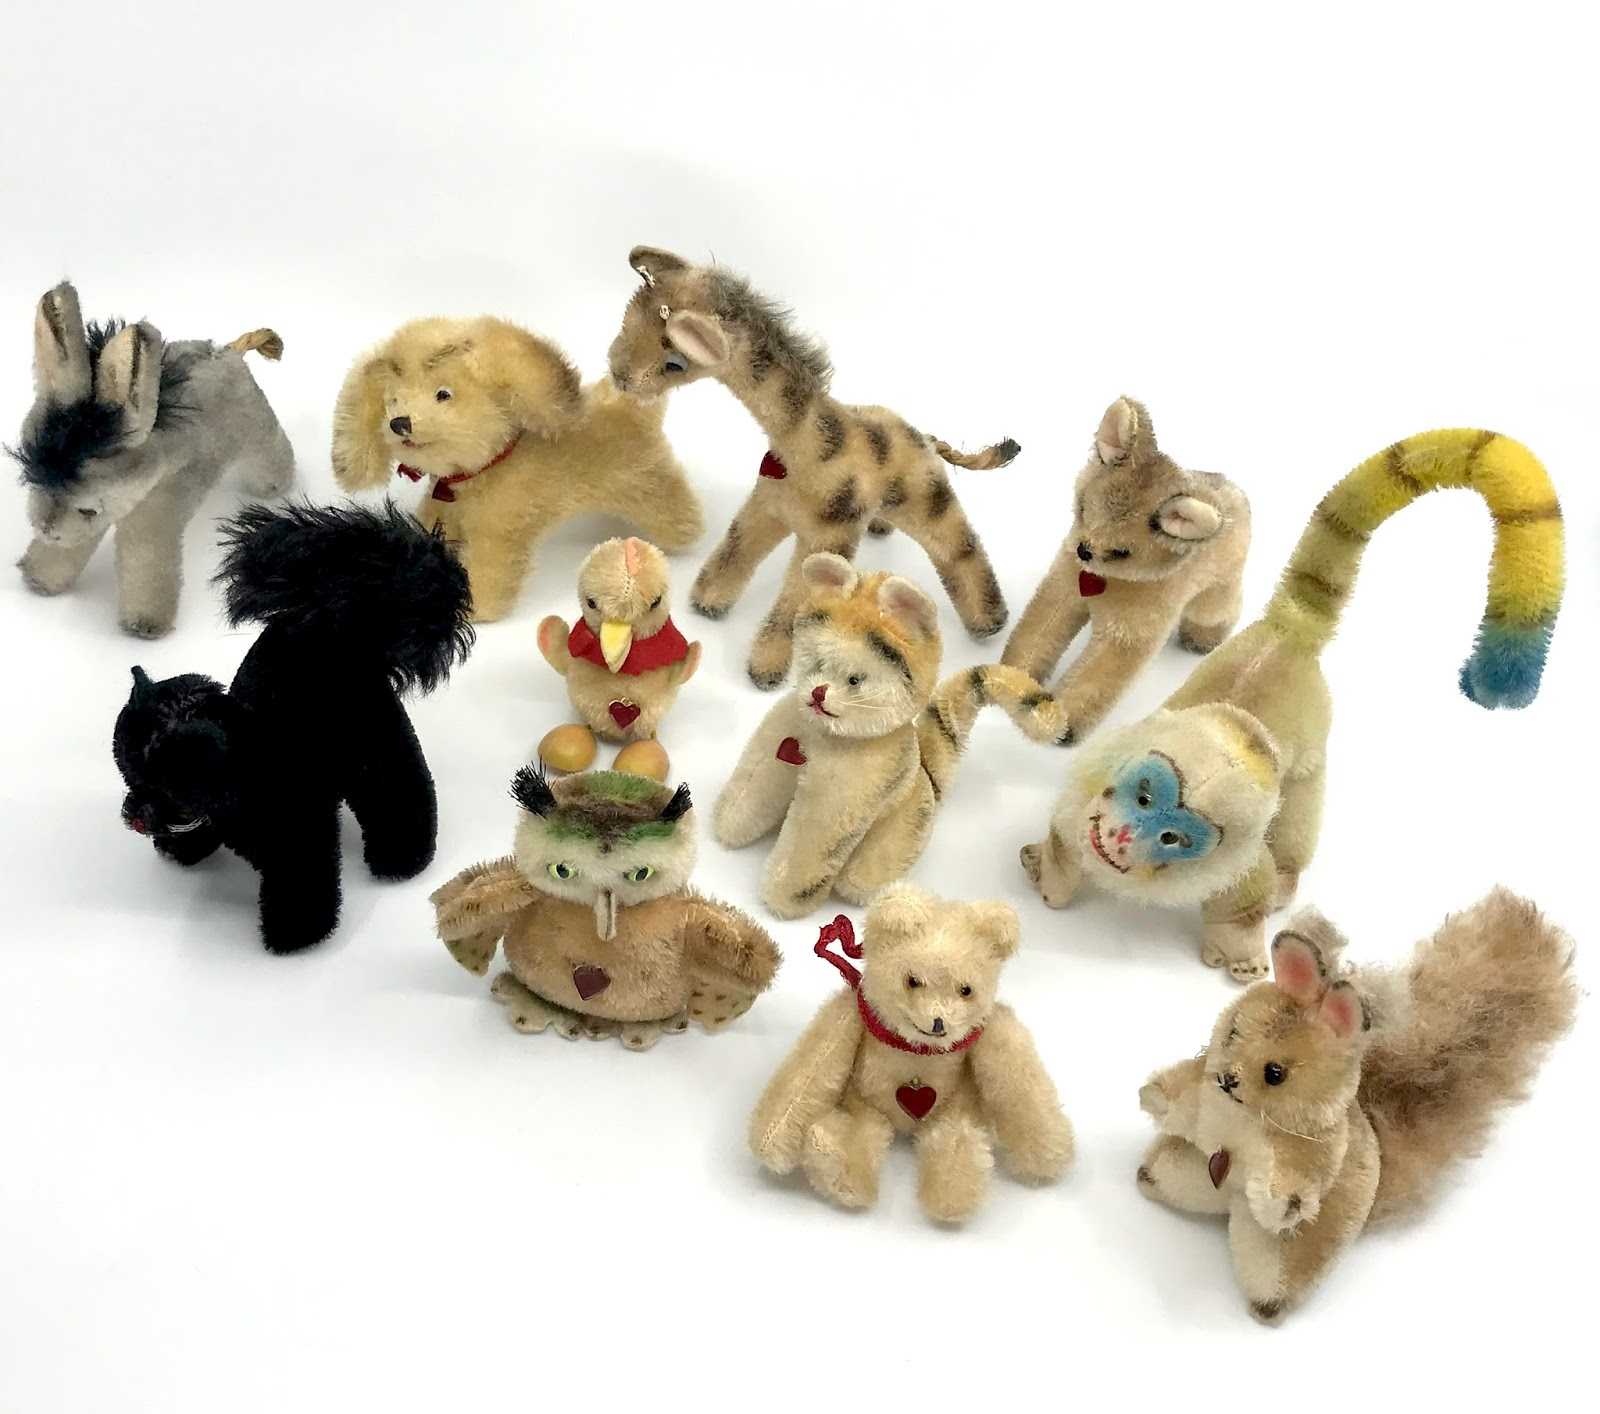 History of stuffed toys